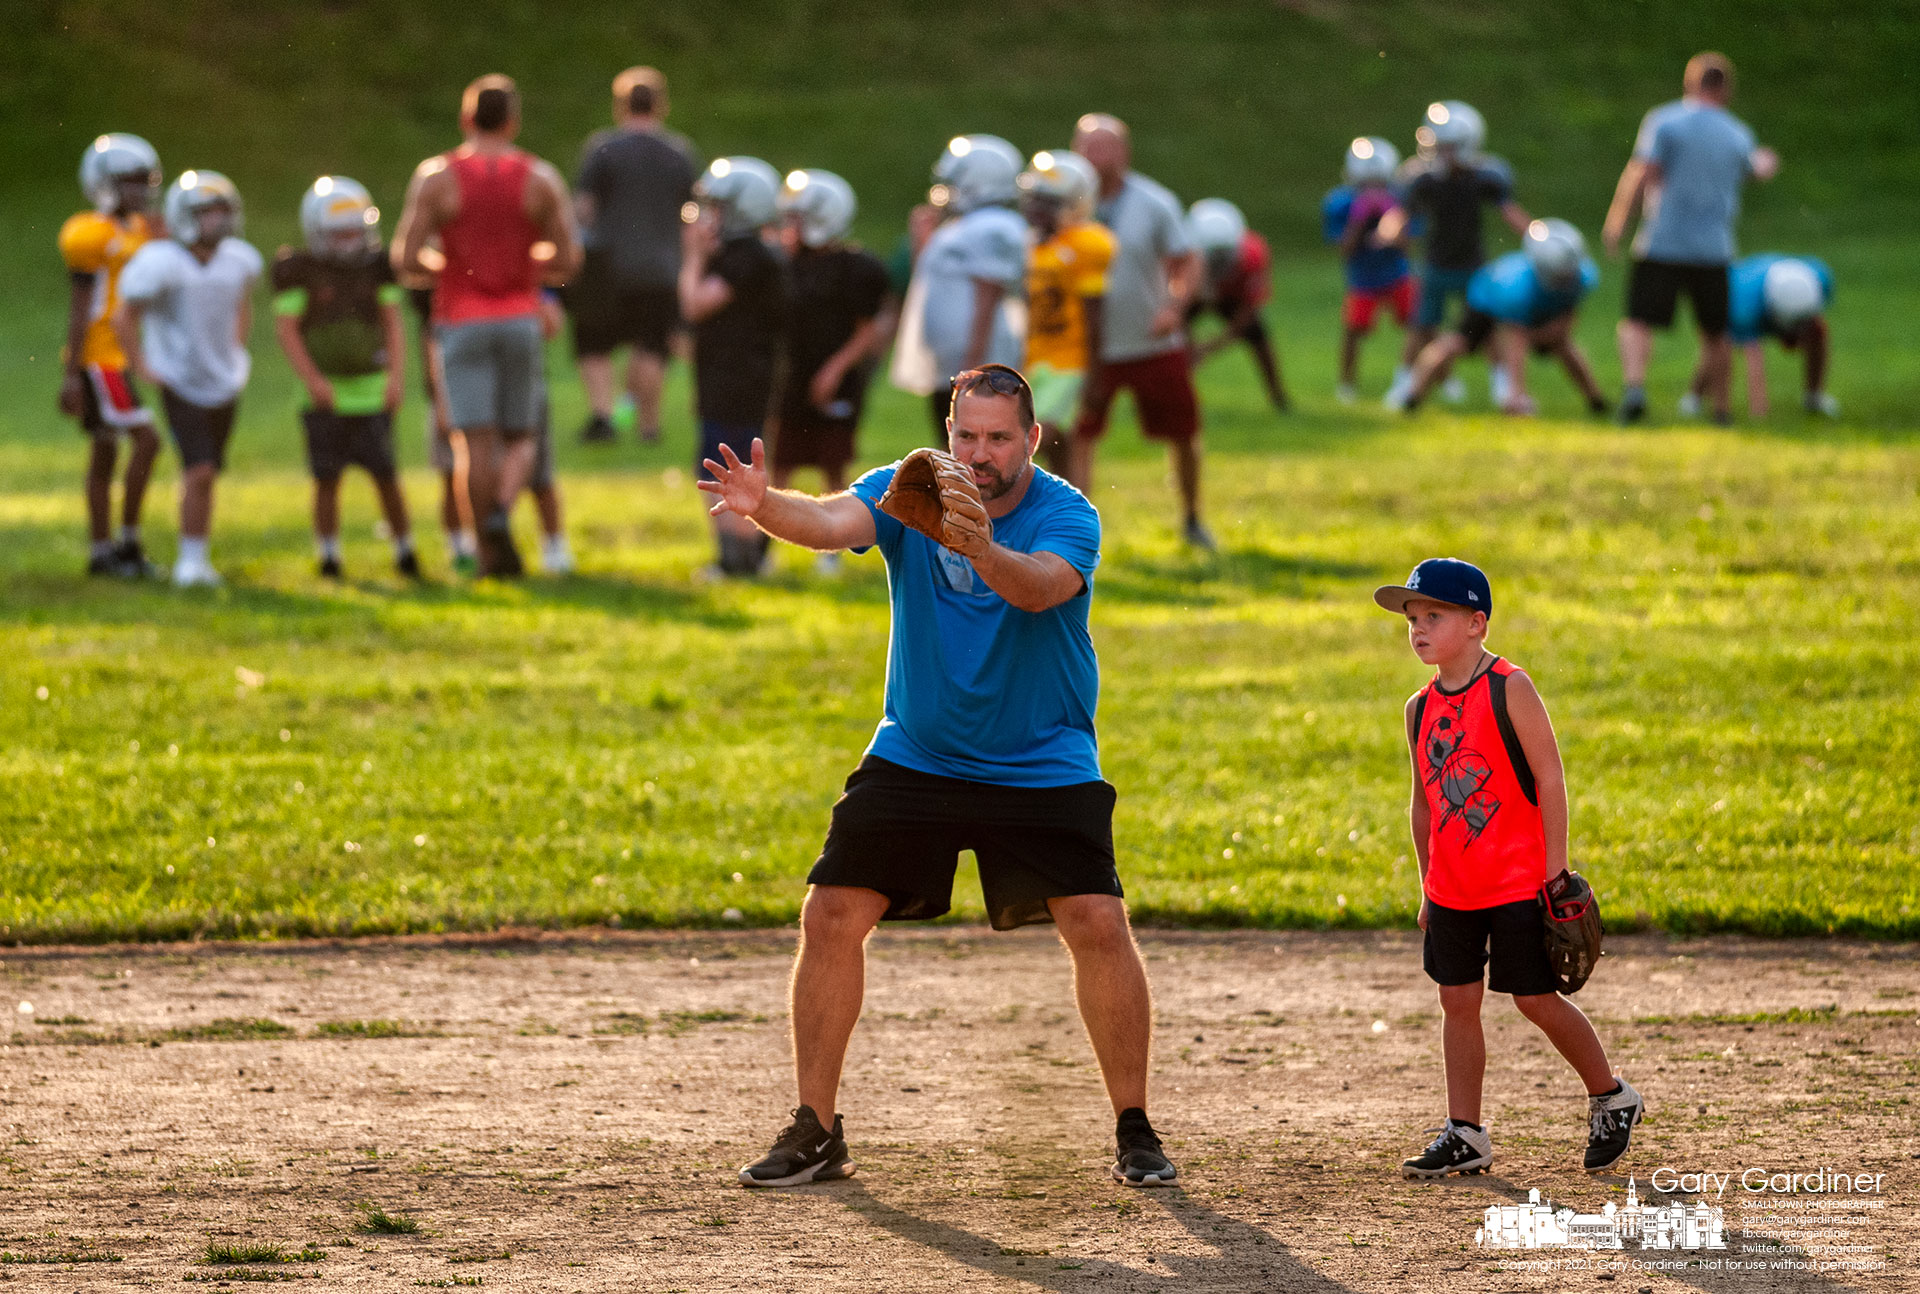 A baseball coach instructs one of his players at Alum Creek Park where other coaches work with the football team practicing at the other end of the field. My Final Photo for Aug. 5, 2021.